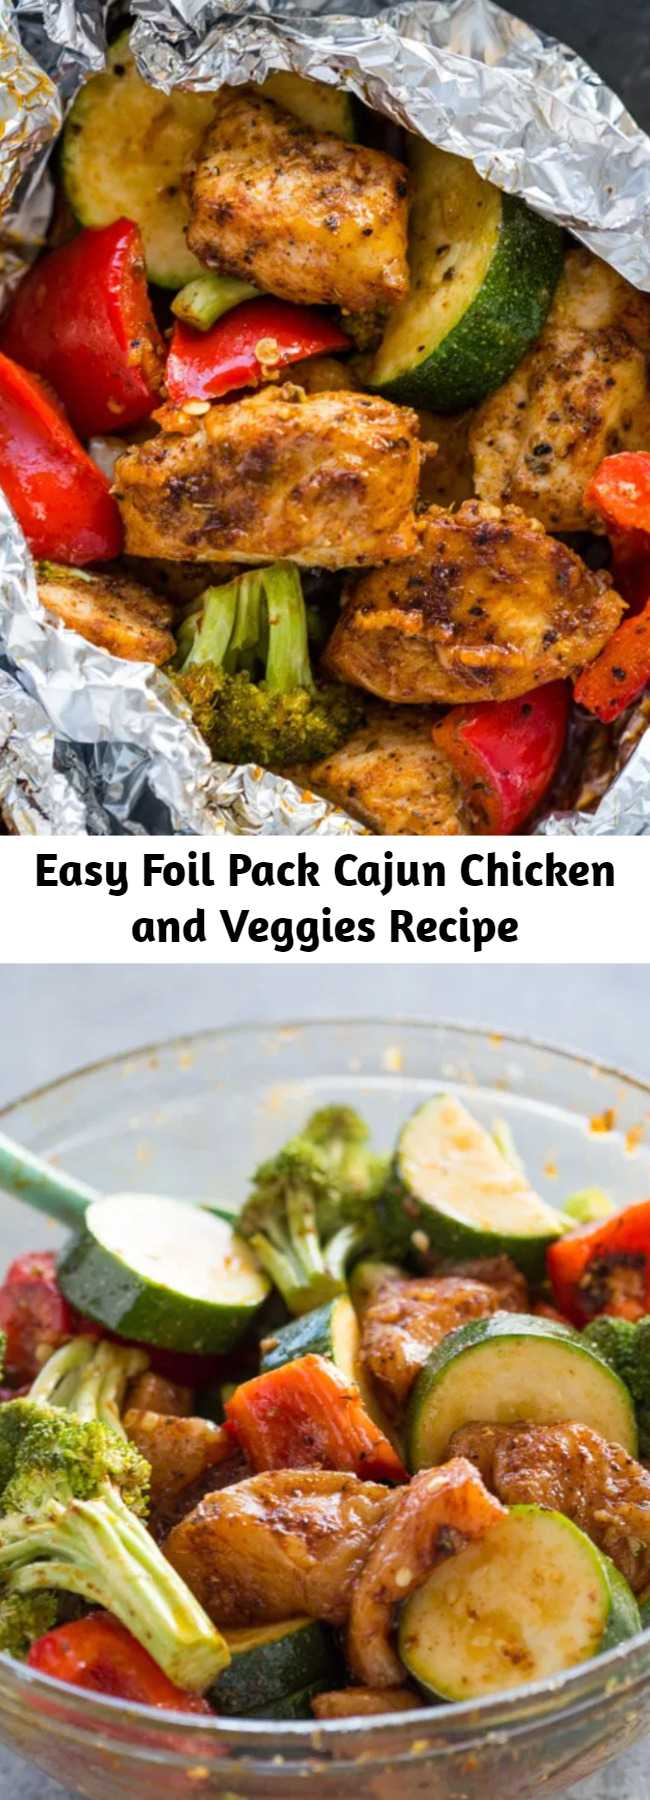 Easy Foil Pack Cajun Chicken and Veggies Recipe - Quick 30-minute chicken and veggies flavored with Cajun seasoning, garlic, and olive oil. These flavorful flavor packs are super healthy and make a delicious low-carb dinner.